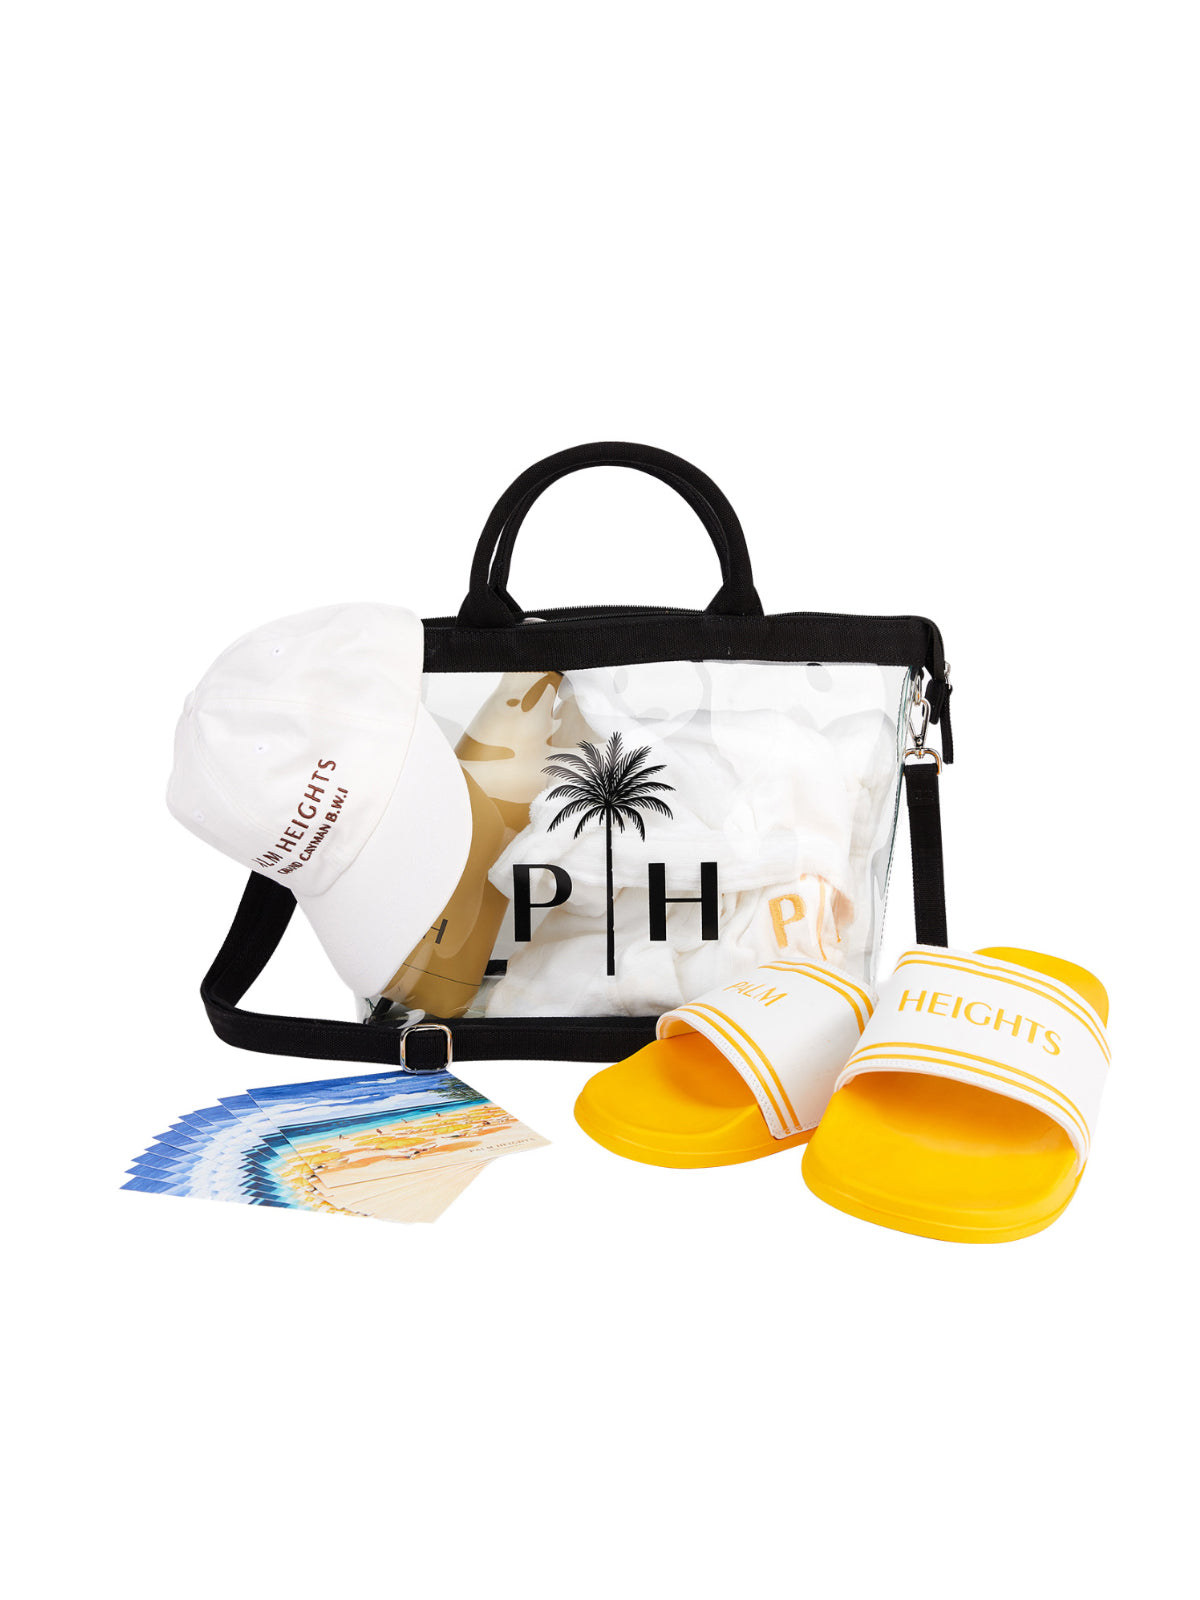 transparent beach bag Palm Heights with accessories